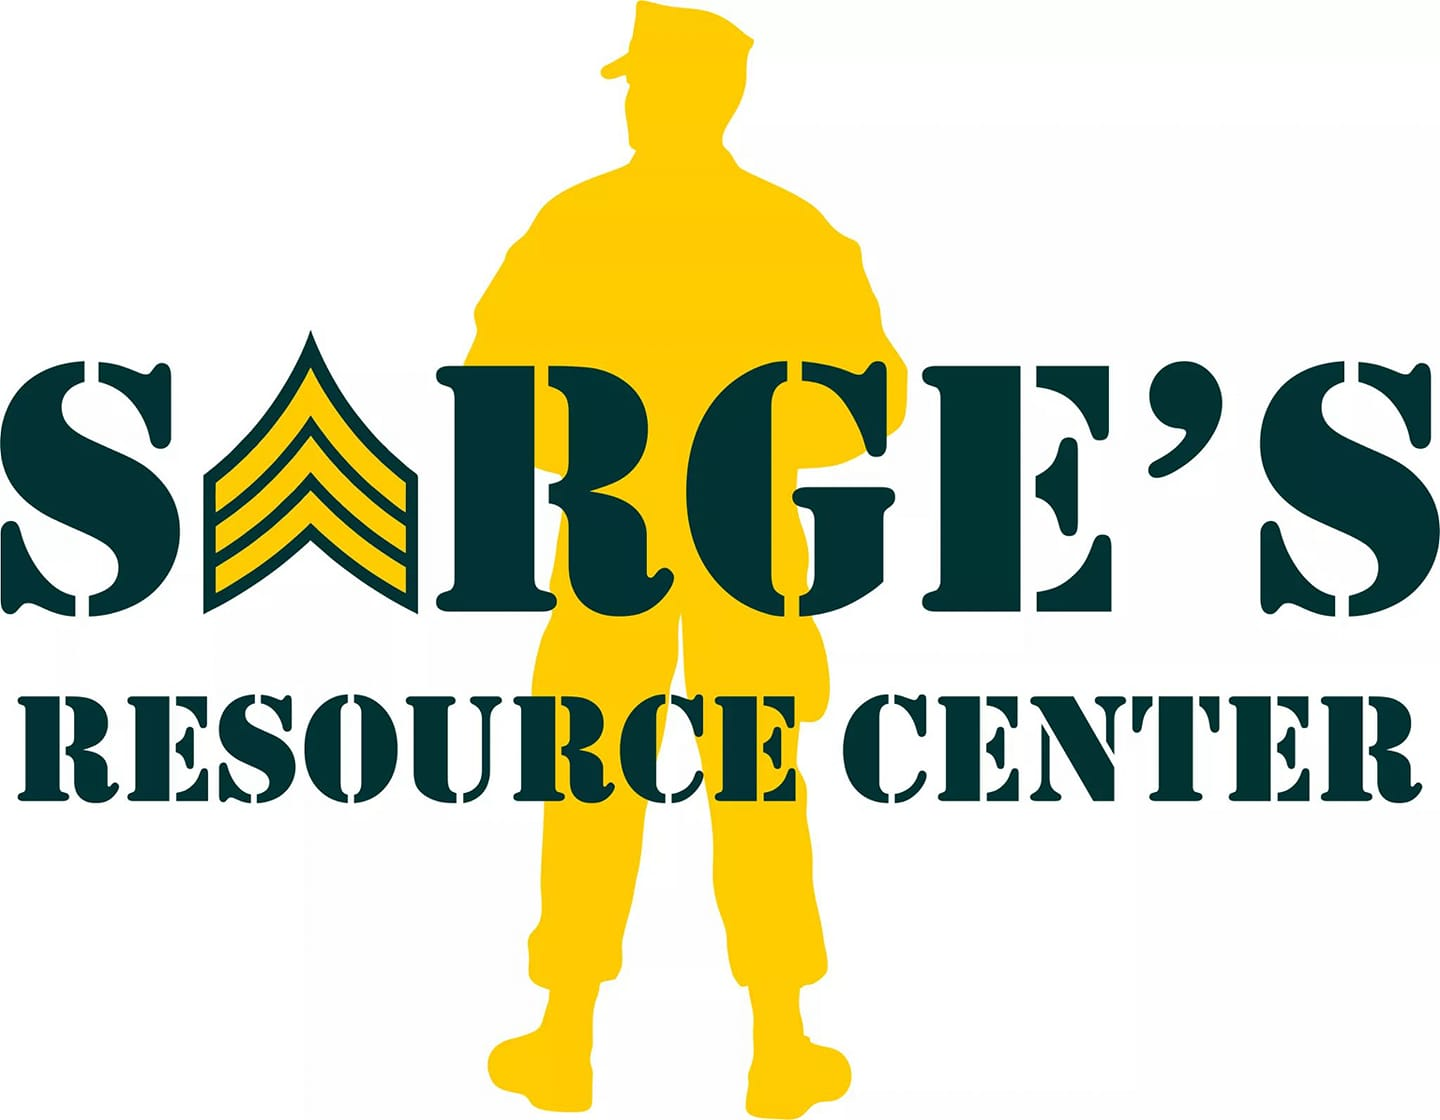 Sarge's Resource Center